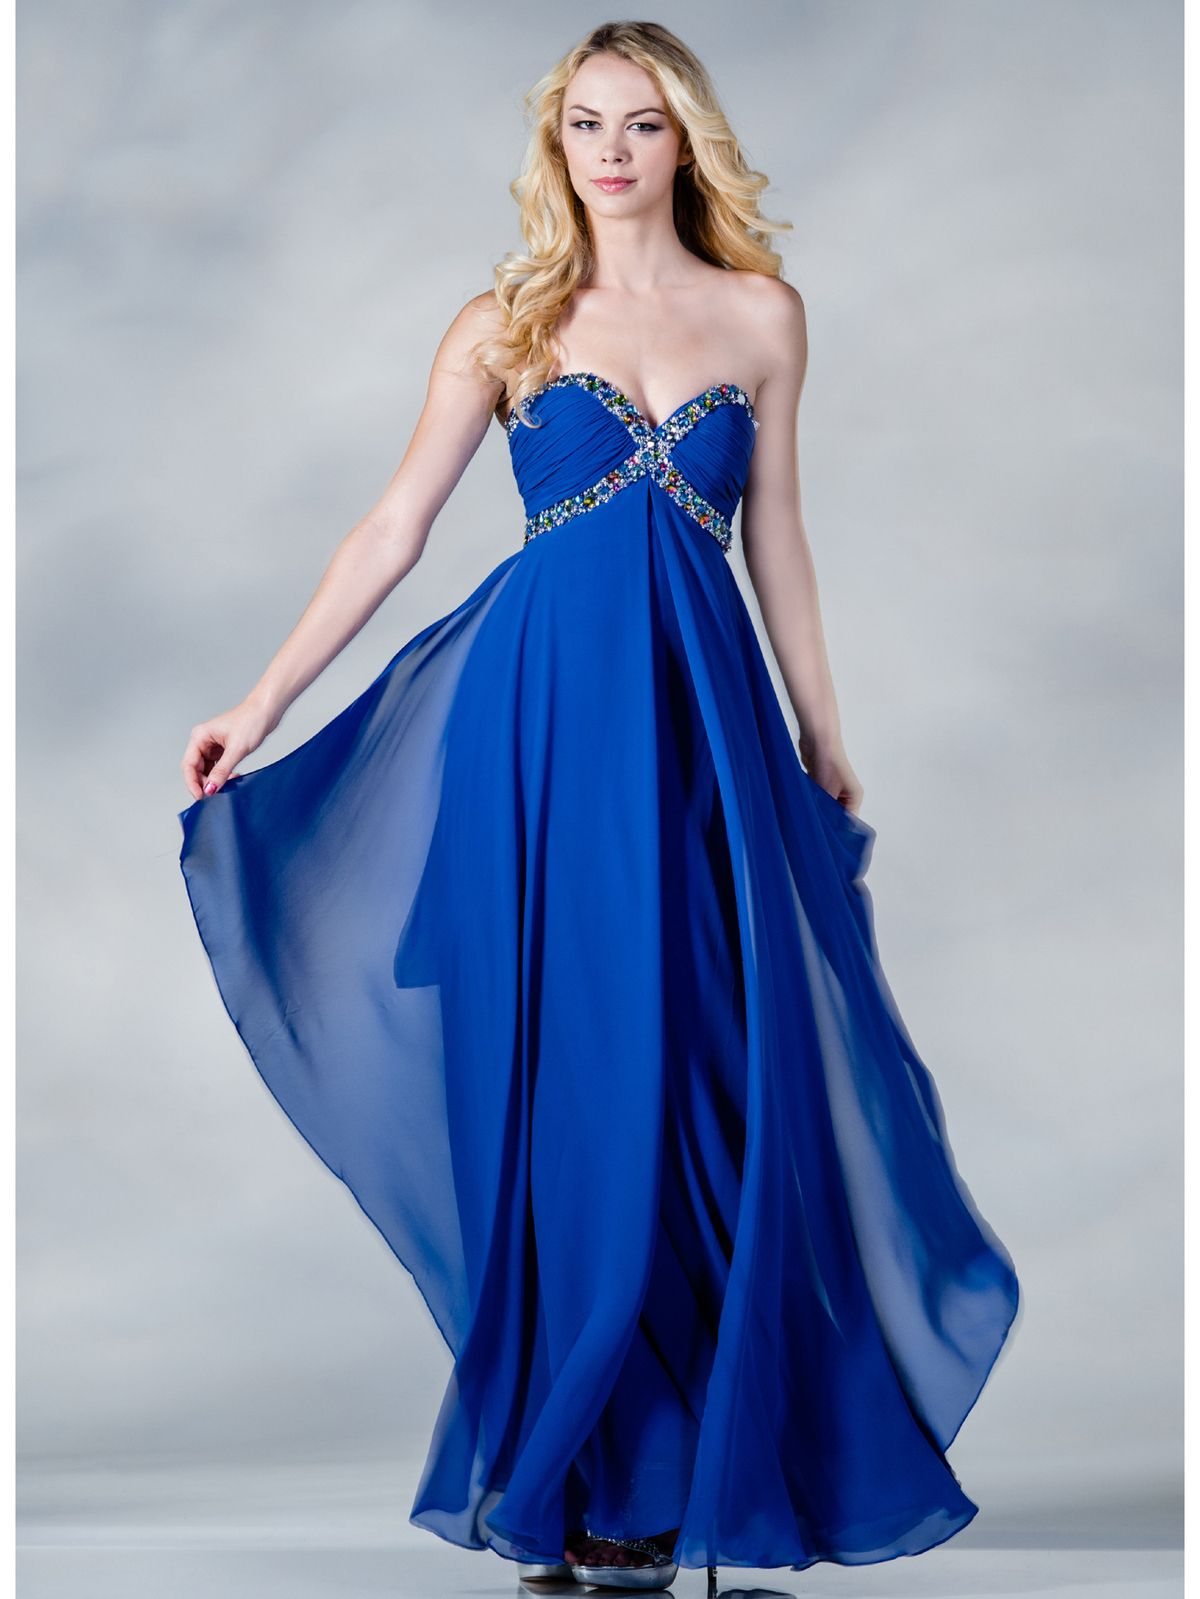 10 Best images about Blue Prom Dress on Pinterest - Prom dresses ...